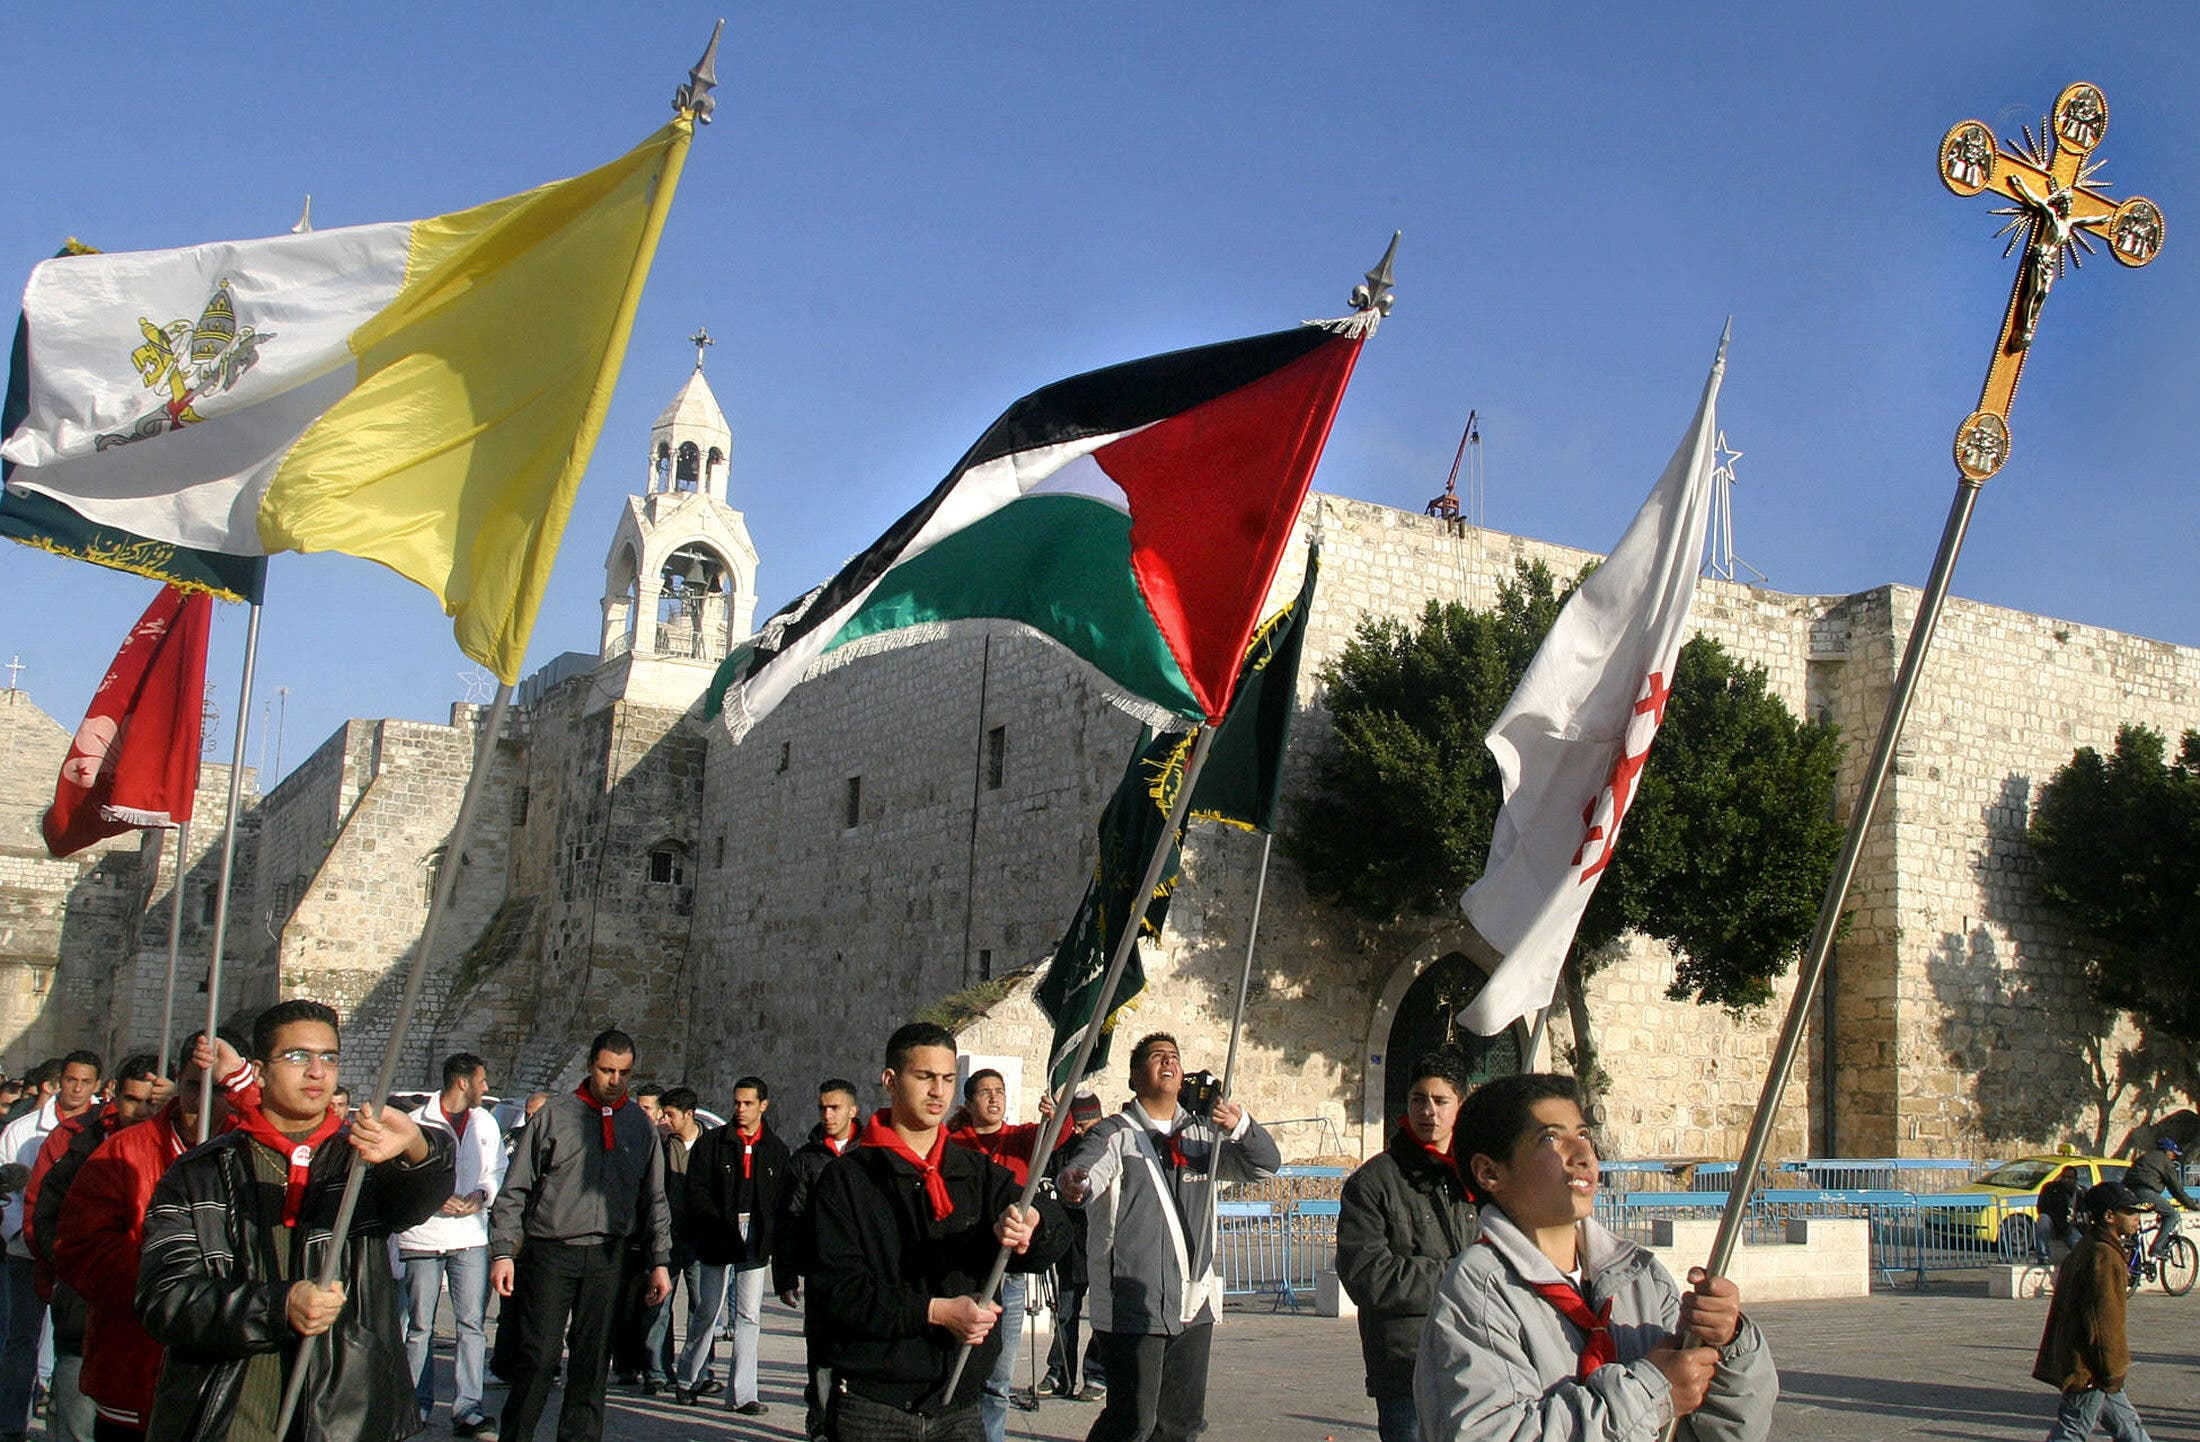 Palestinian Catholic boy scouts march with their national flag and the Vatican's flag during a procession for Pope John Paul II outside the Church of the Nativity in Bethlehem, April 2, 2005. (AFP)